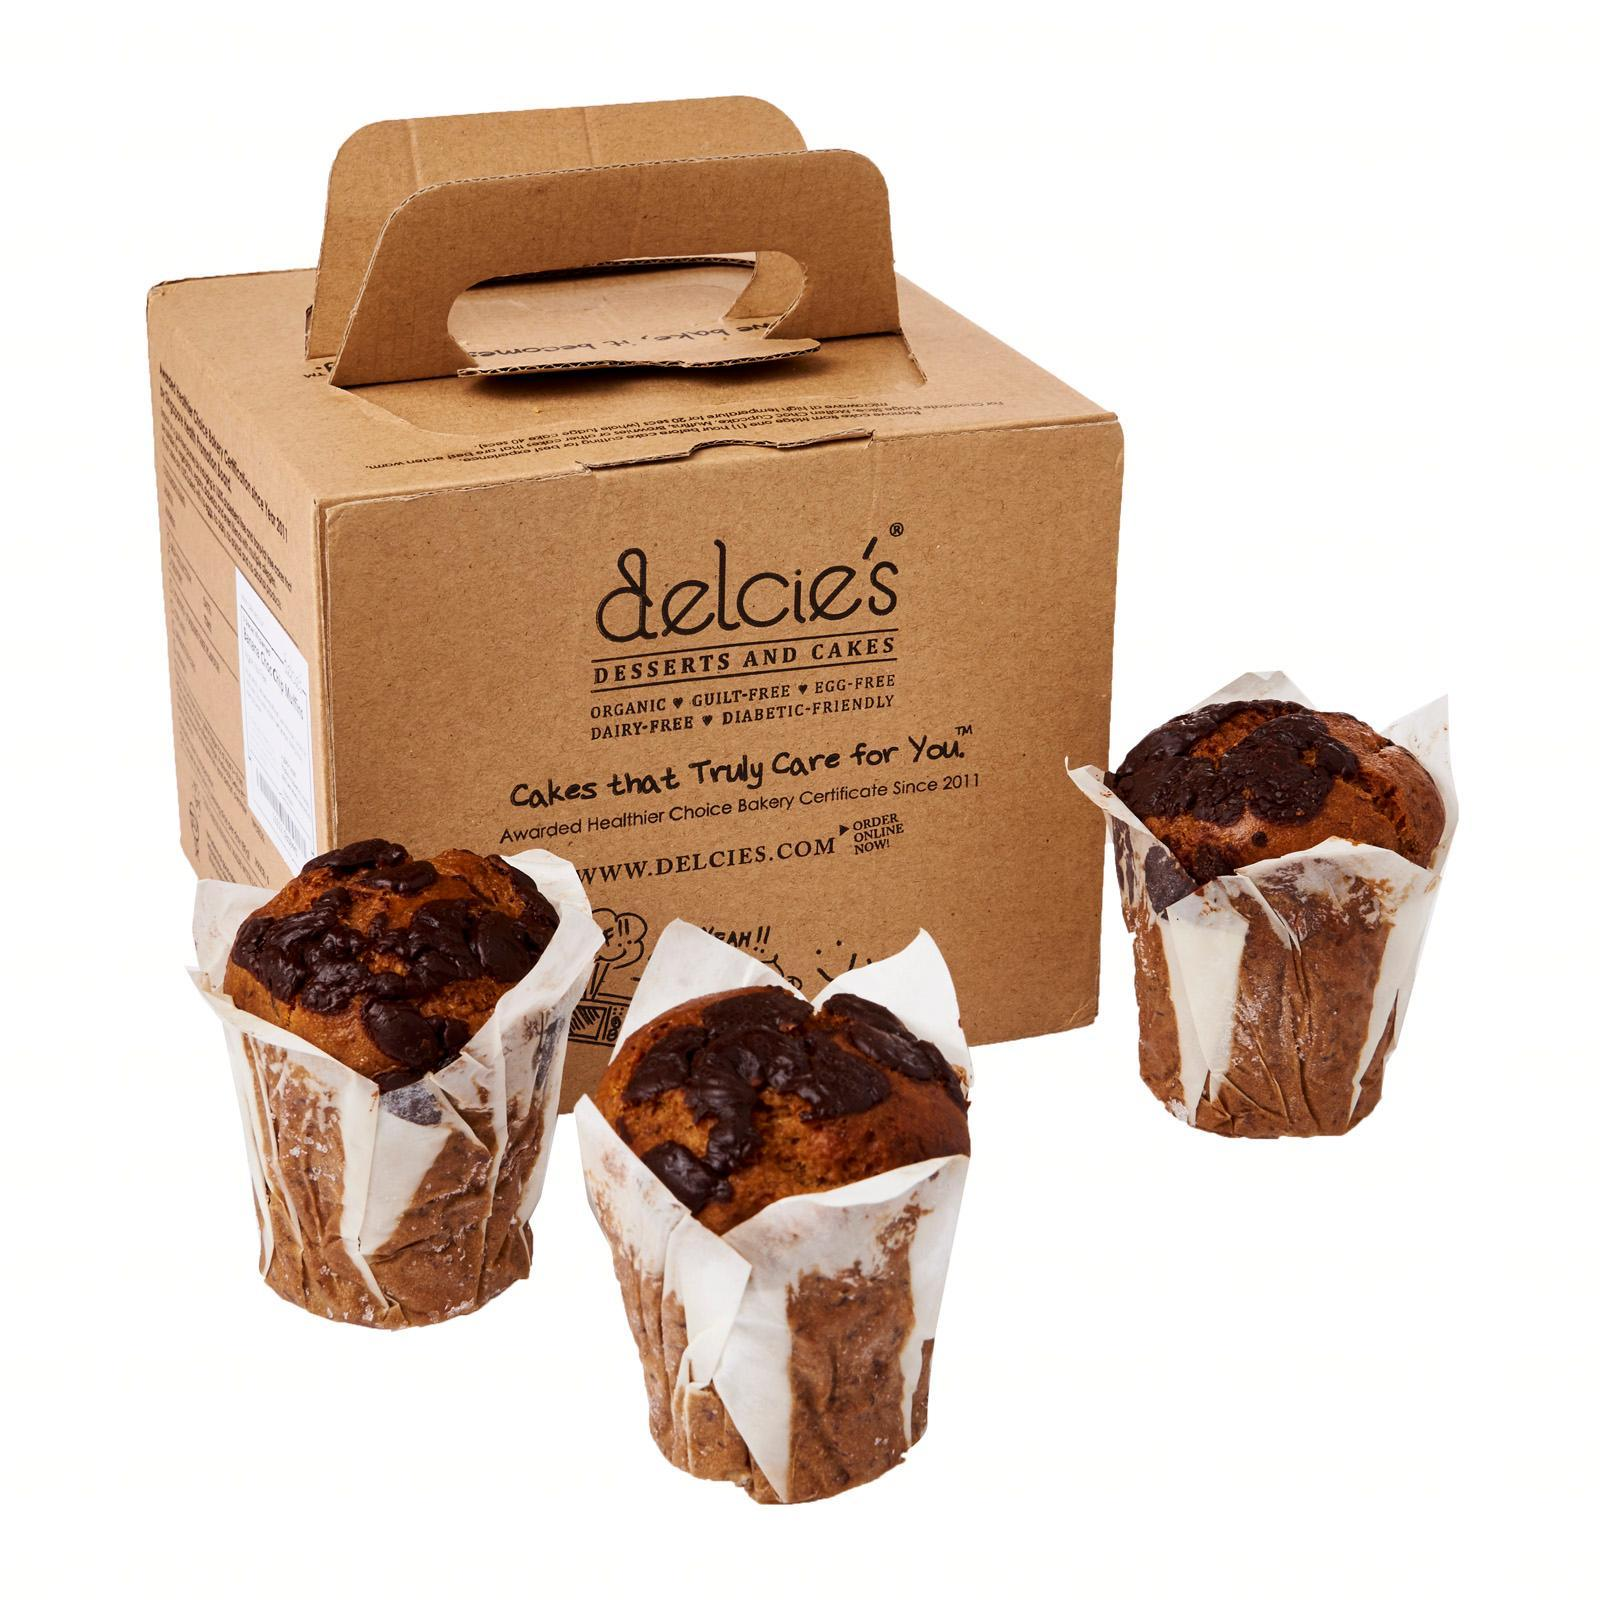 Delcie's Desserts and Cakes Vegan Gluten-Free Nut-Free Wholemeal Banana Chocolate Muffins - Frozen